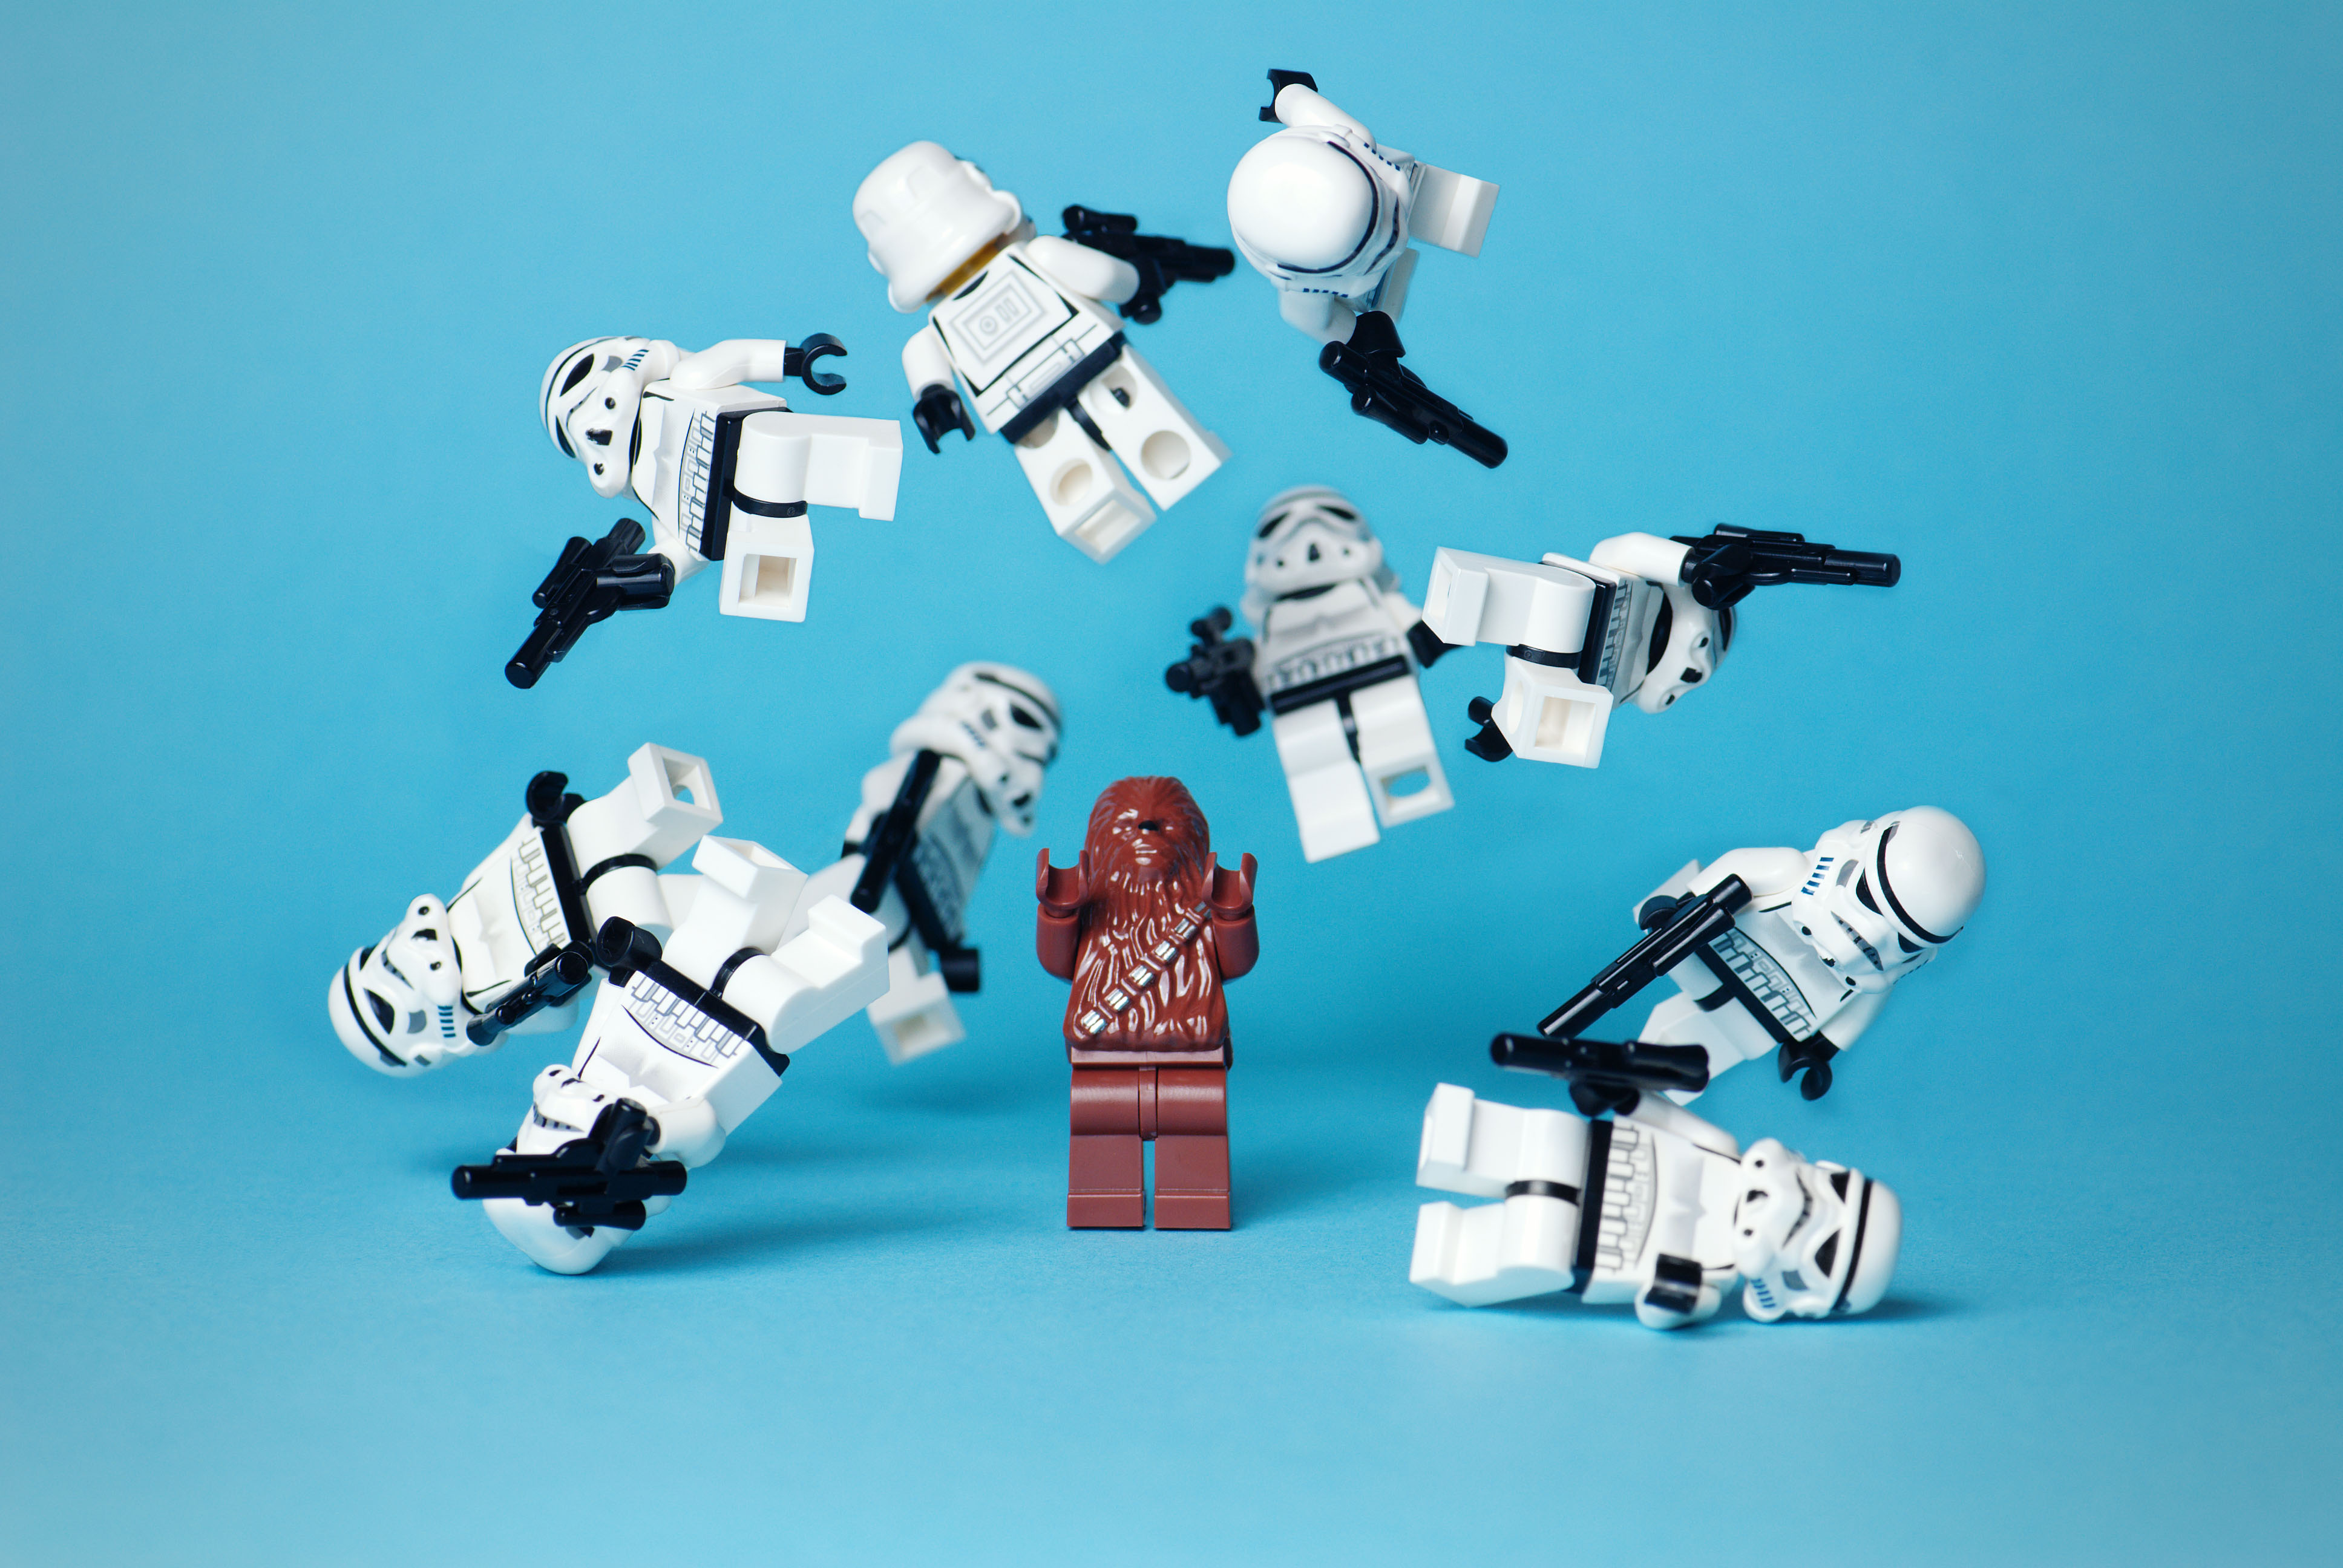 Star Wars Stormtroopers Chewbacca Legos Free Wallpaper Images, Photos, Reviews